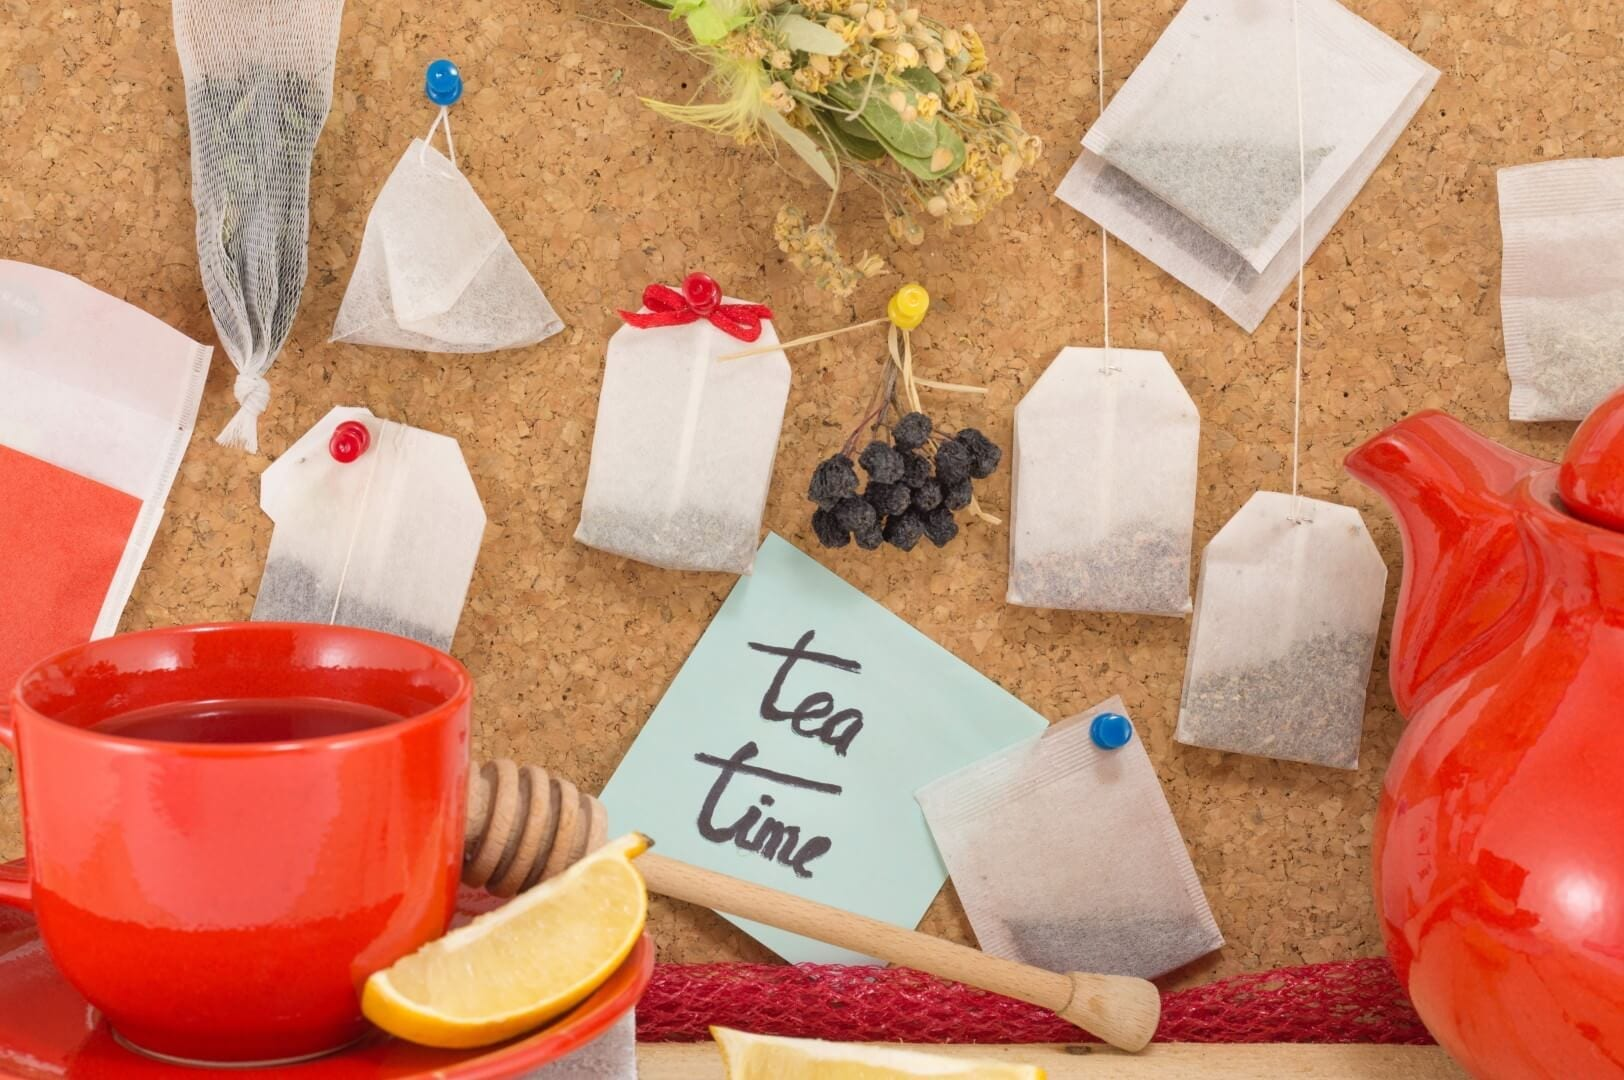 stock photo of tea bags